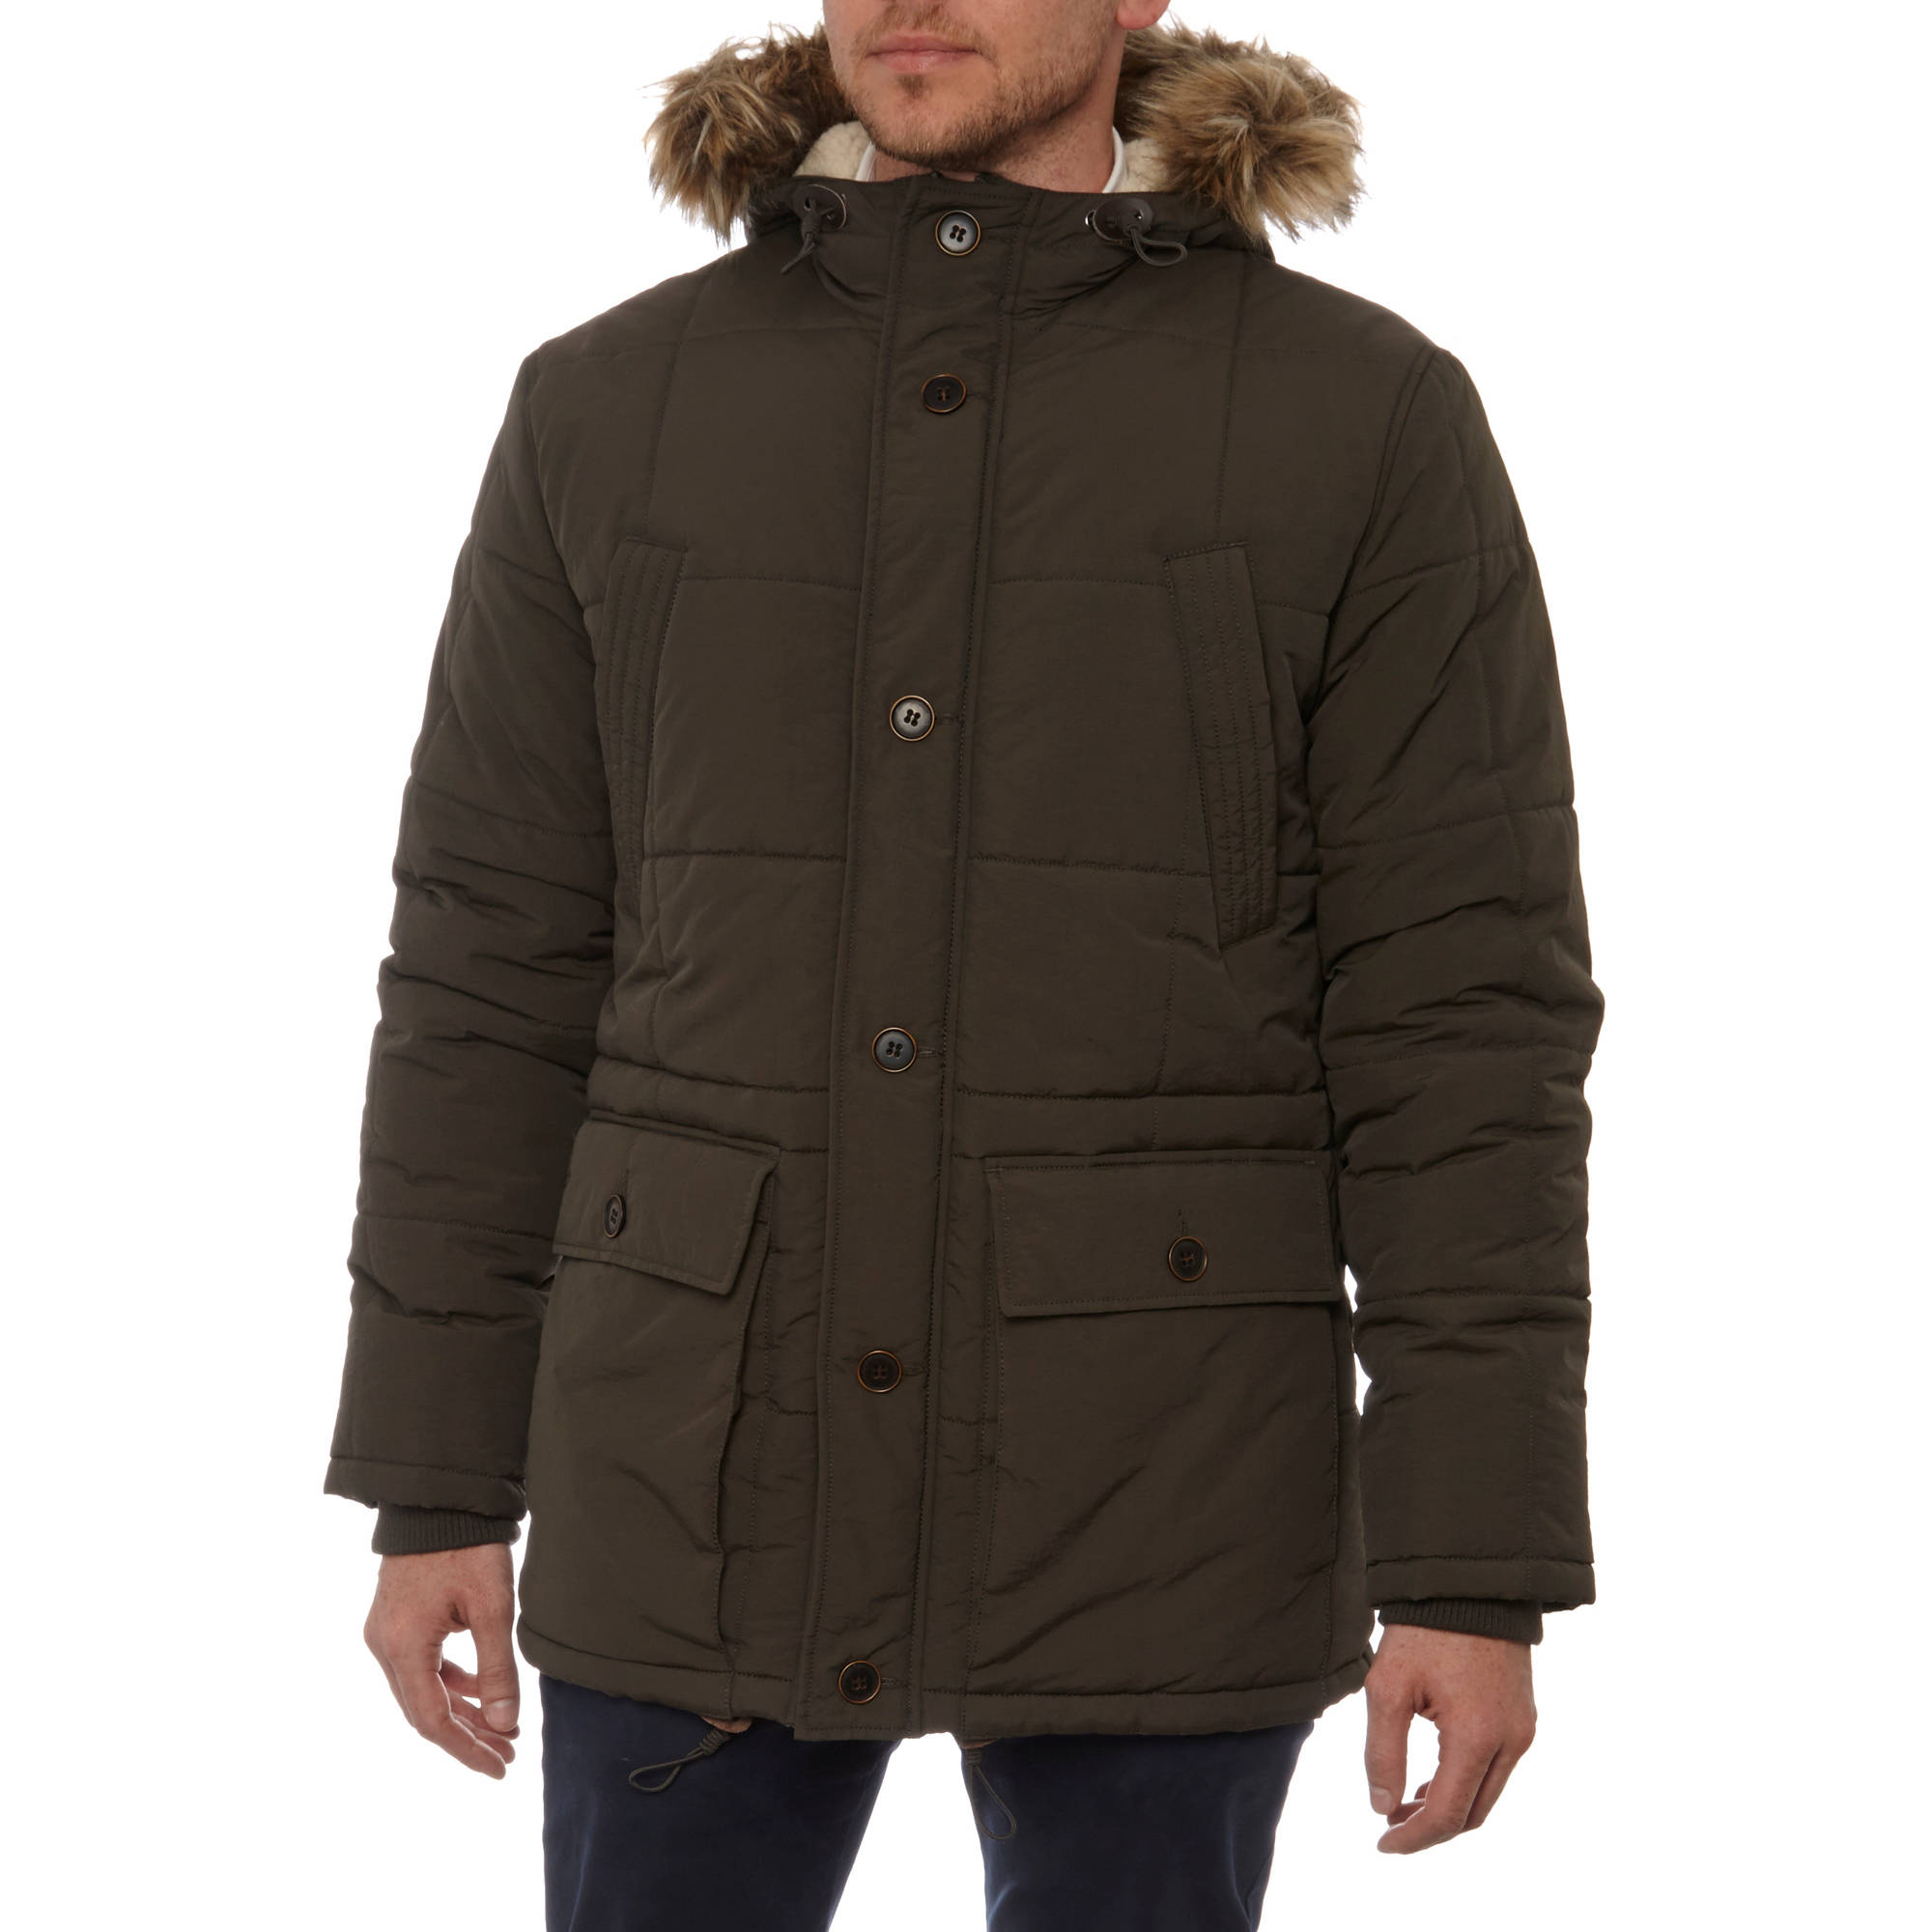 Find great deals on eBay for mens hooded puffer jacket. Shop with confidence. Skip to main content. eBay: Shop by category. Shop by category. Enter your search keyword Mens Cotton Wadded Coat Puffer Fur Collar Padded Hooded Jacket Warm Long Outwear. New (Other) $ to $ Buy It .